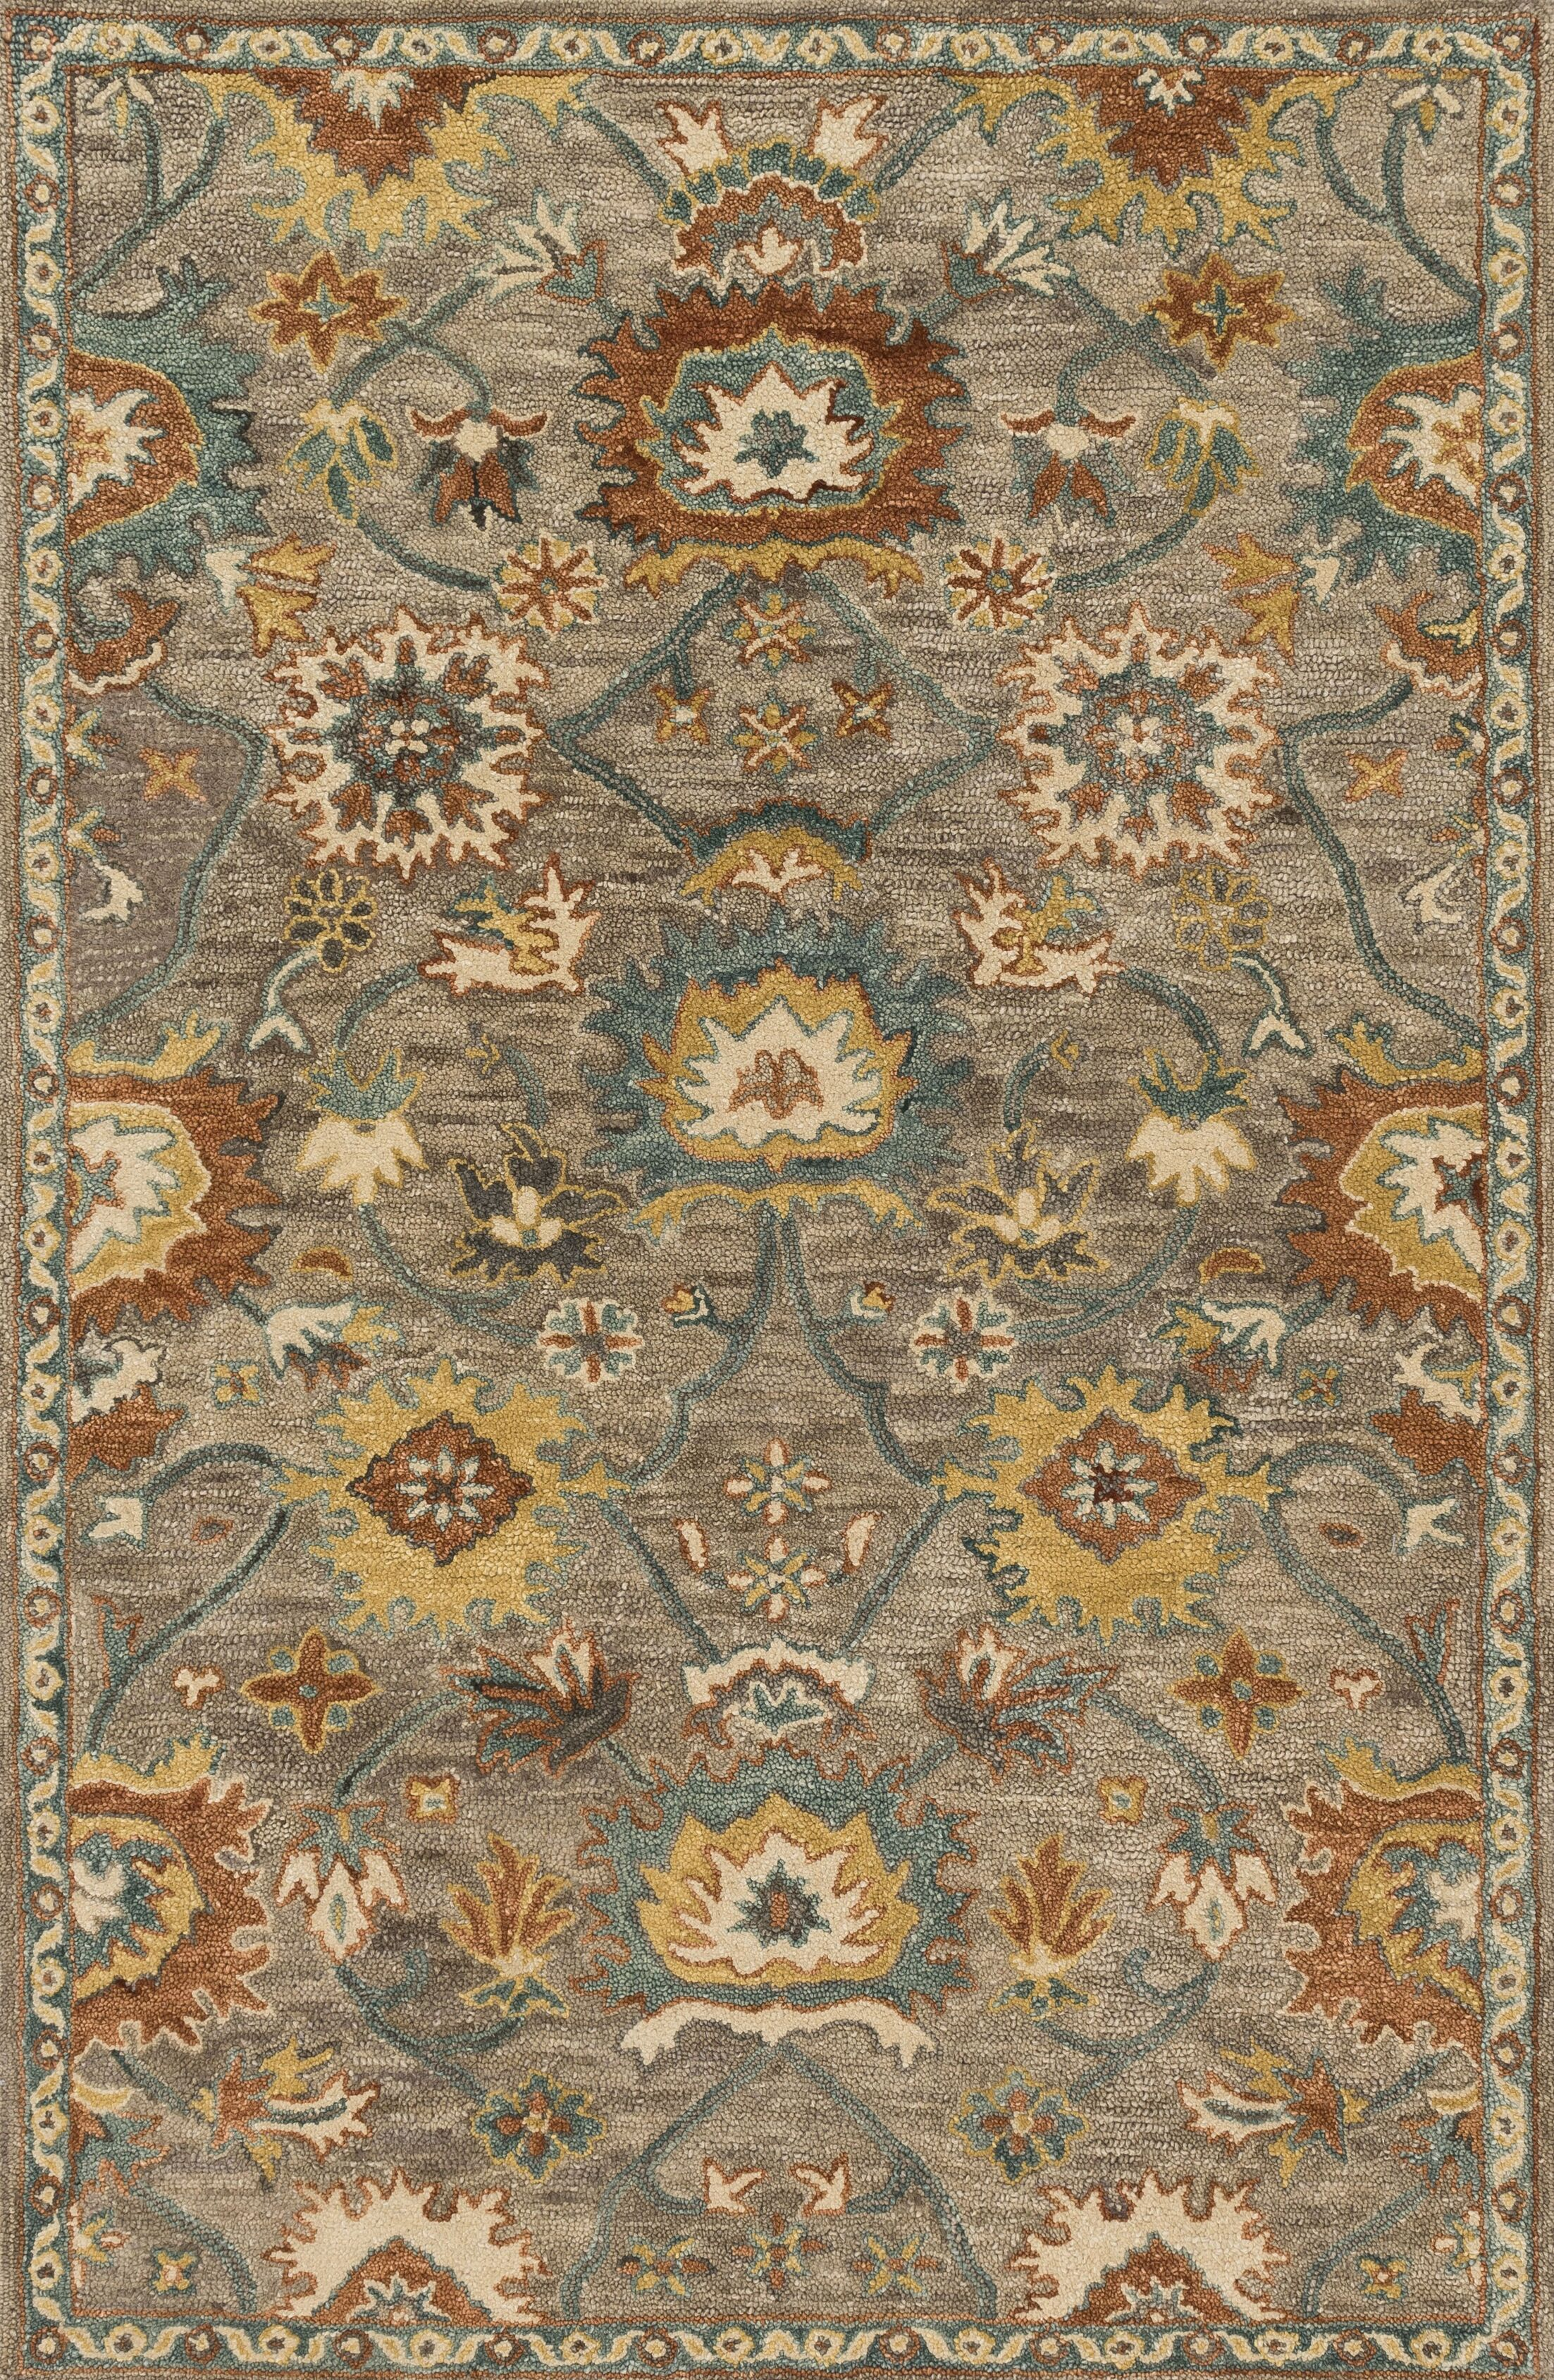 Durkee Gray Area Rug Rug Size: Rectangle 5' x 7'6